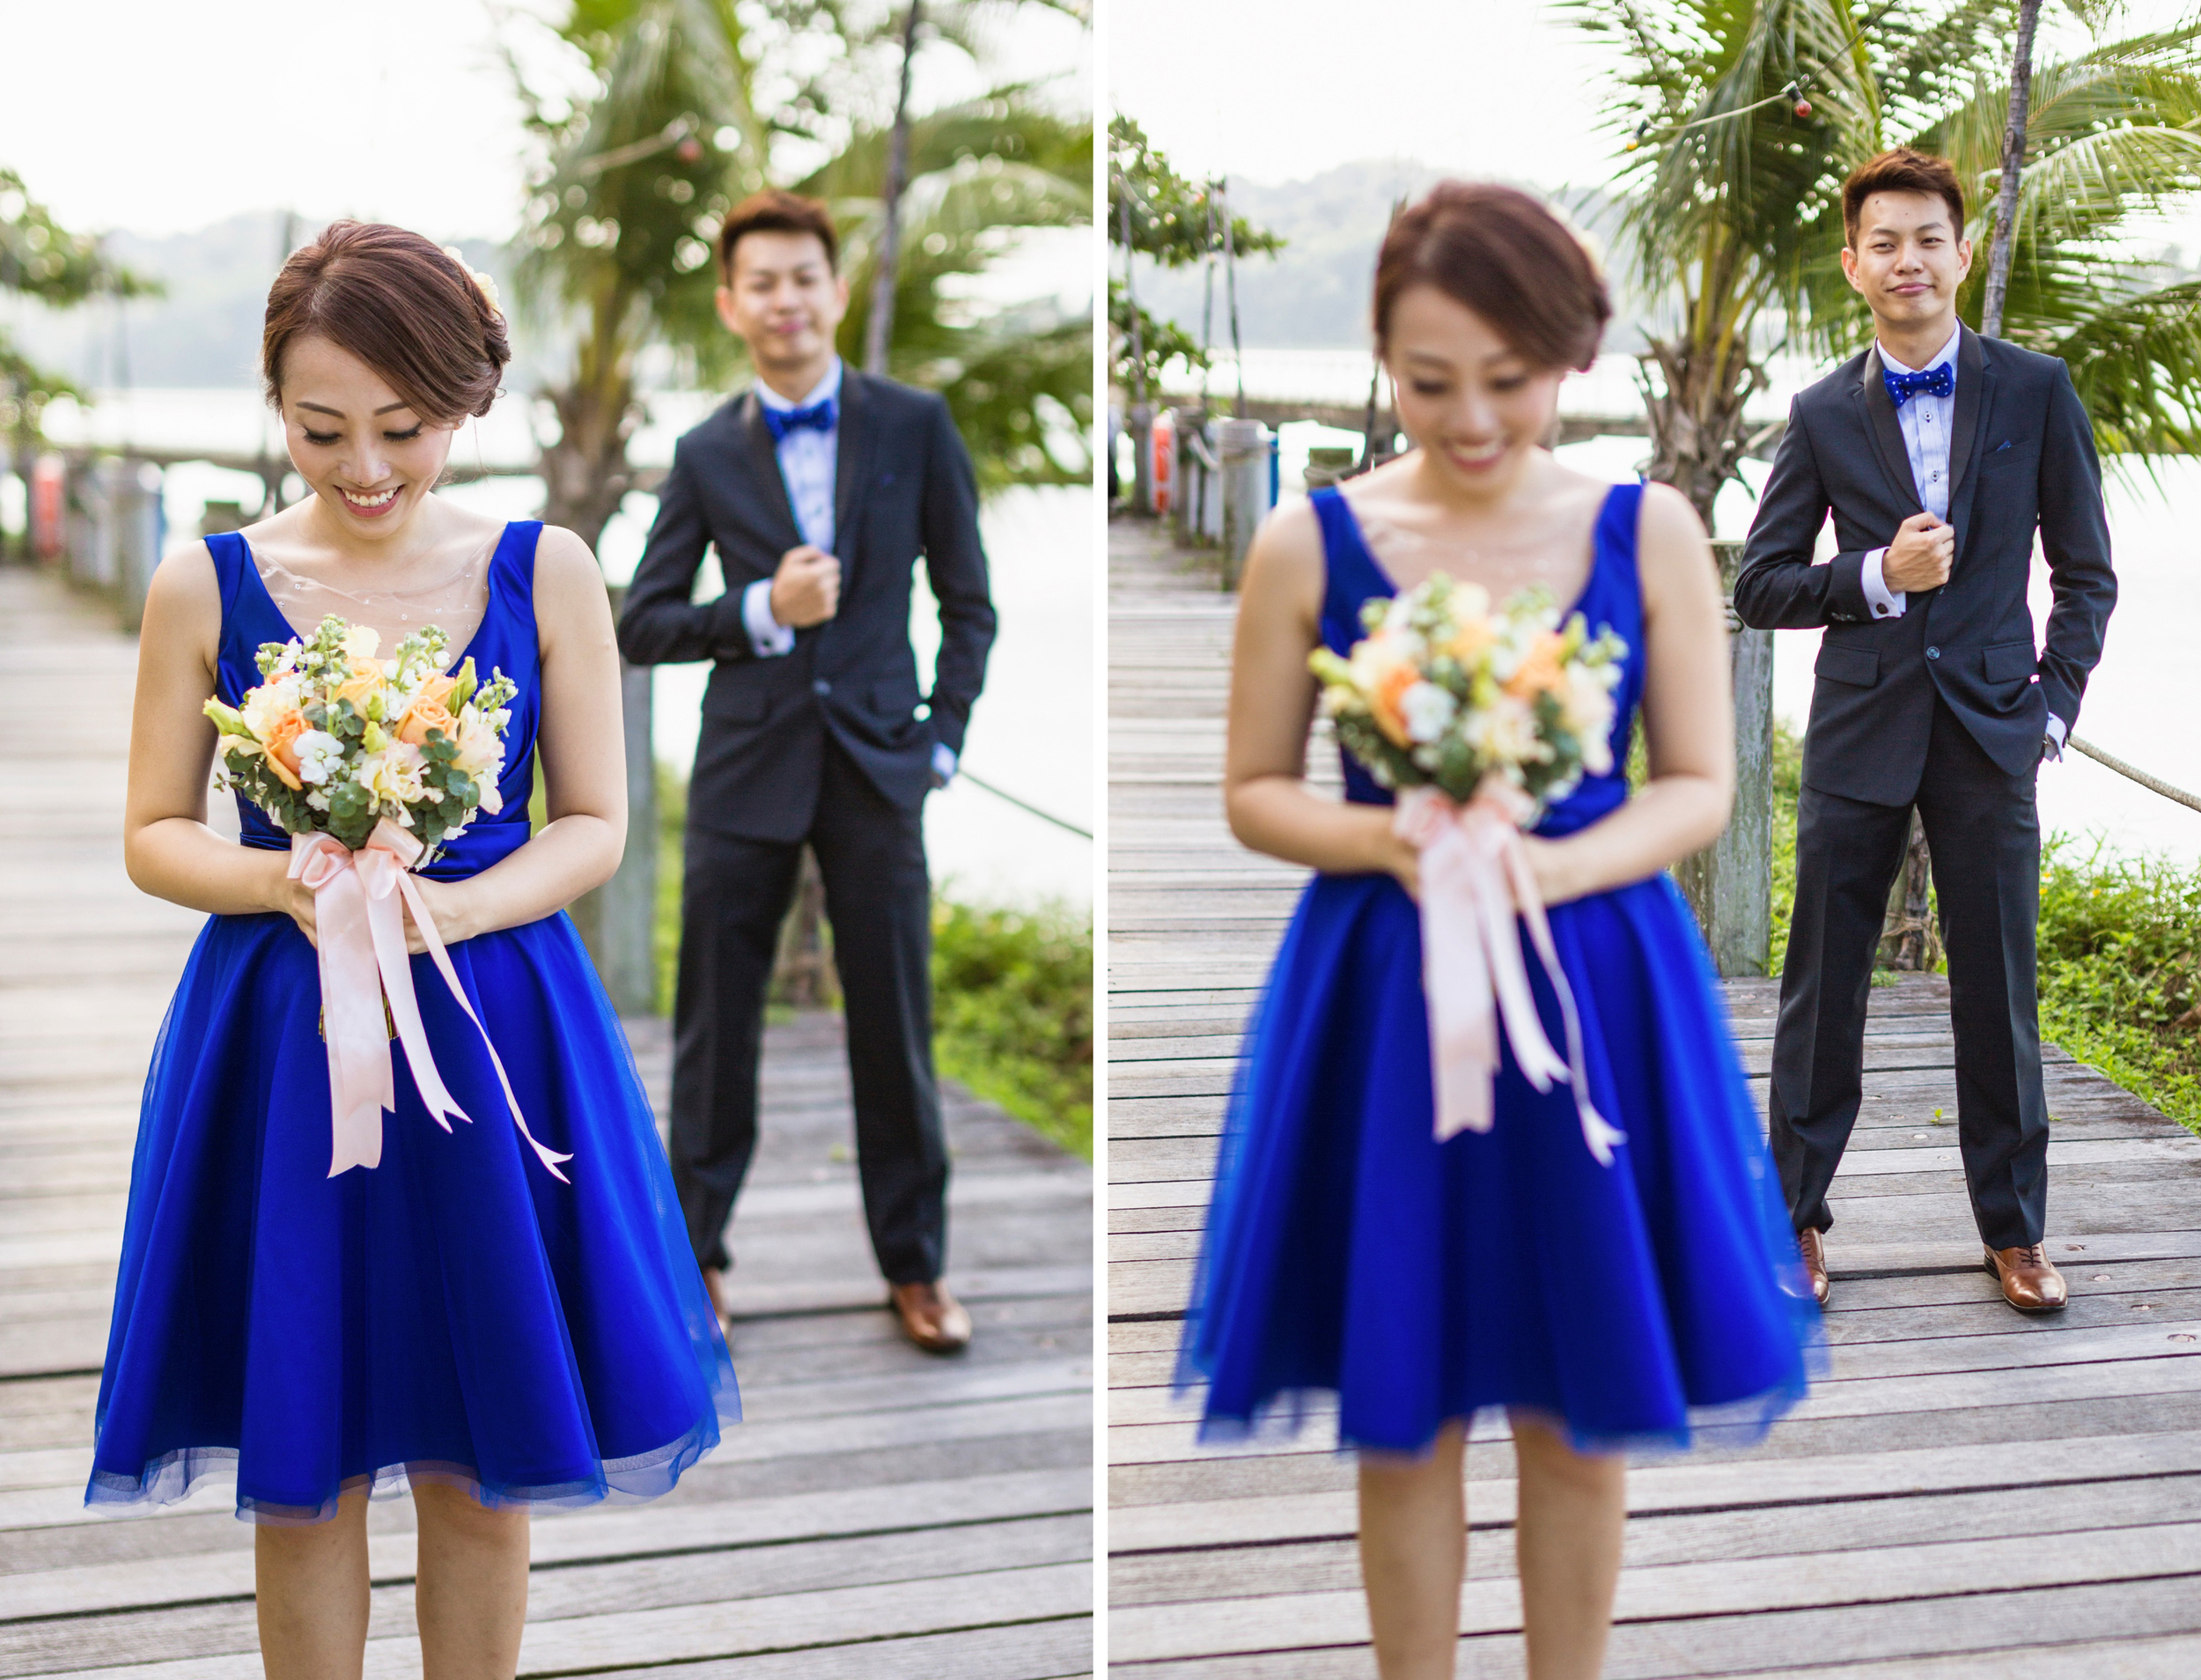 4 Reasons You Should Have An Outdoor Photo Shoot On Your Day Wedding